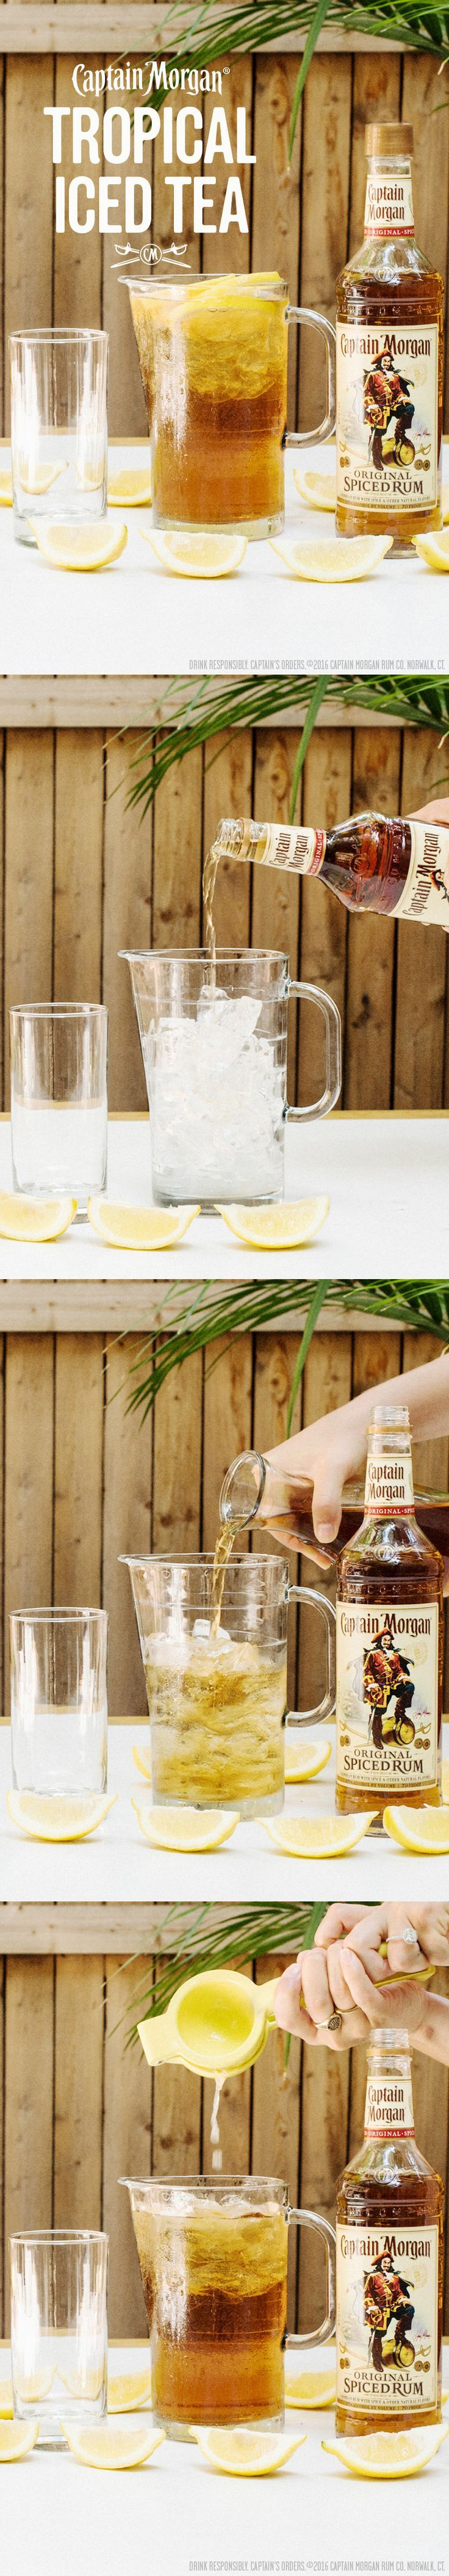 Impress your BBQ guests with this Tropical Iced Tea #recipe: 1.5 oz Captain Morgan Original Spiced Rum 5 oz Ice Tea Squeeze of lemon Get more rum #recipes at us.captainmorgan....